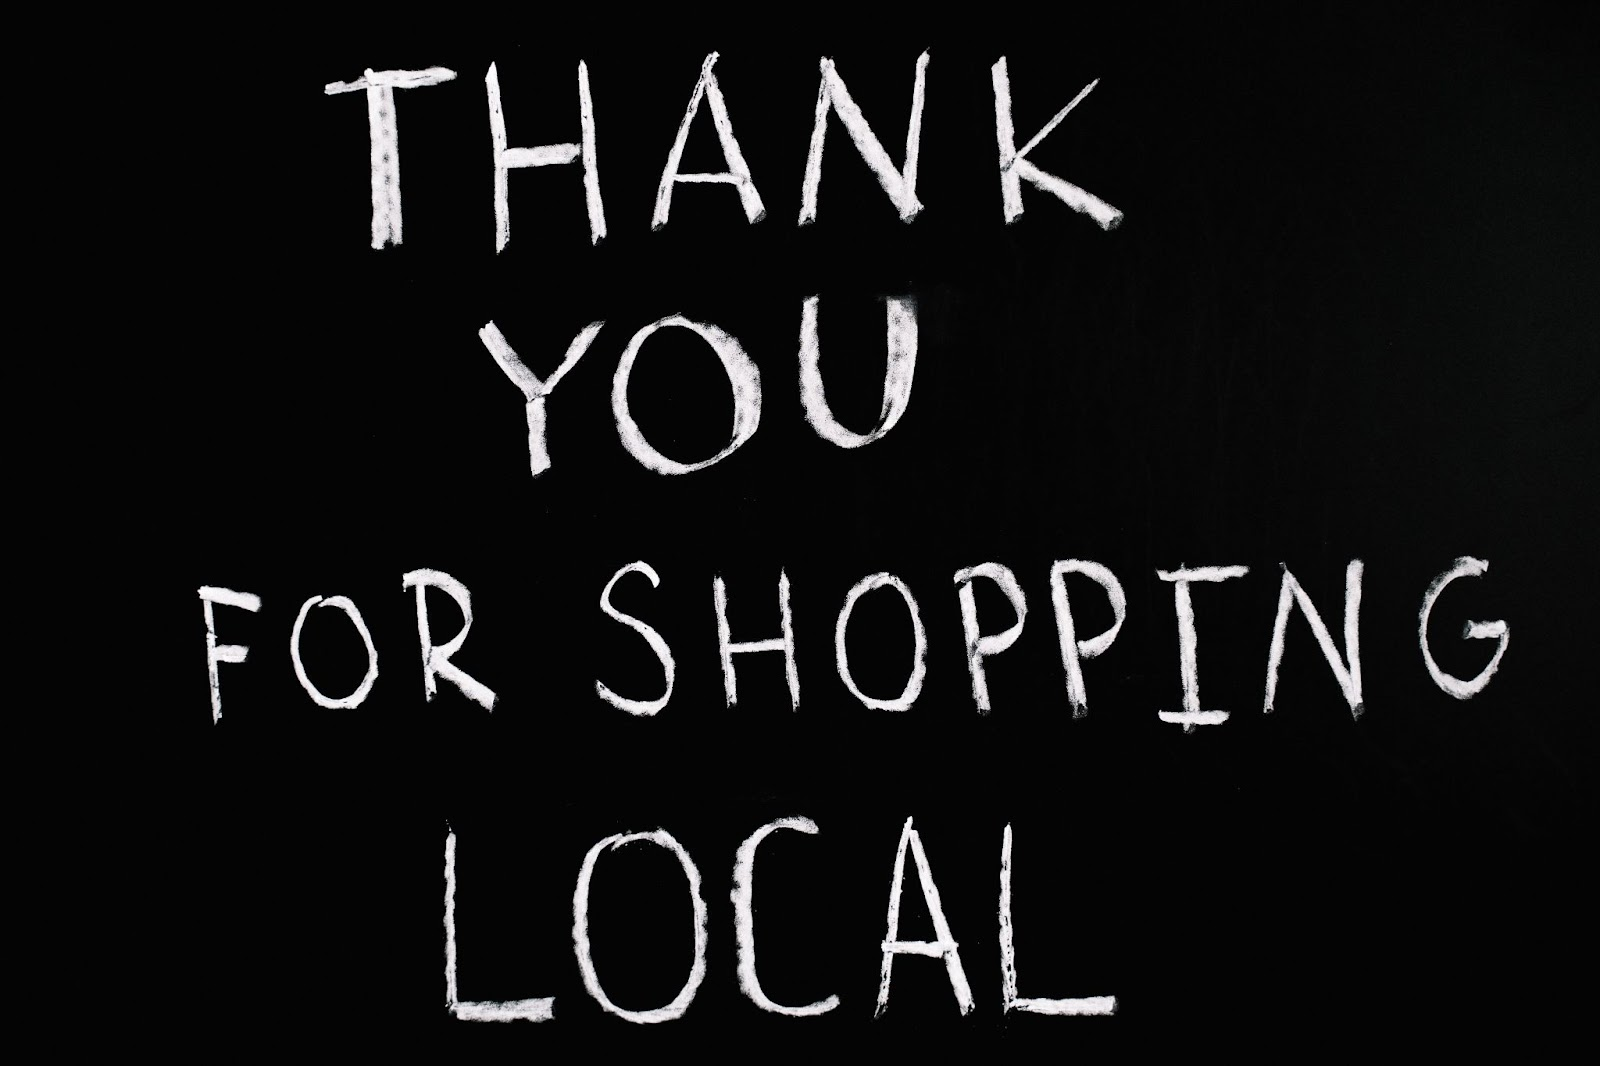 sign thanking for shopping local